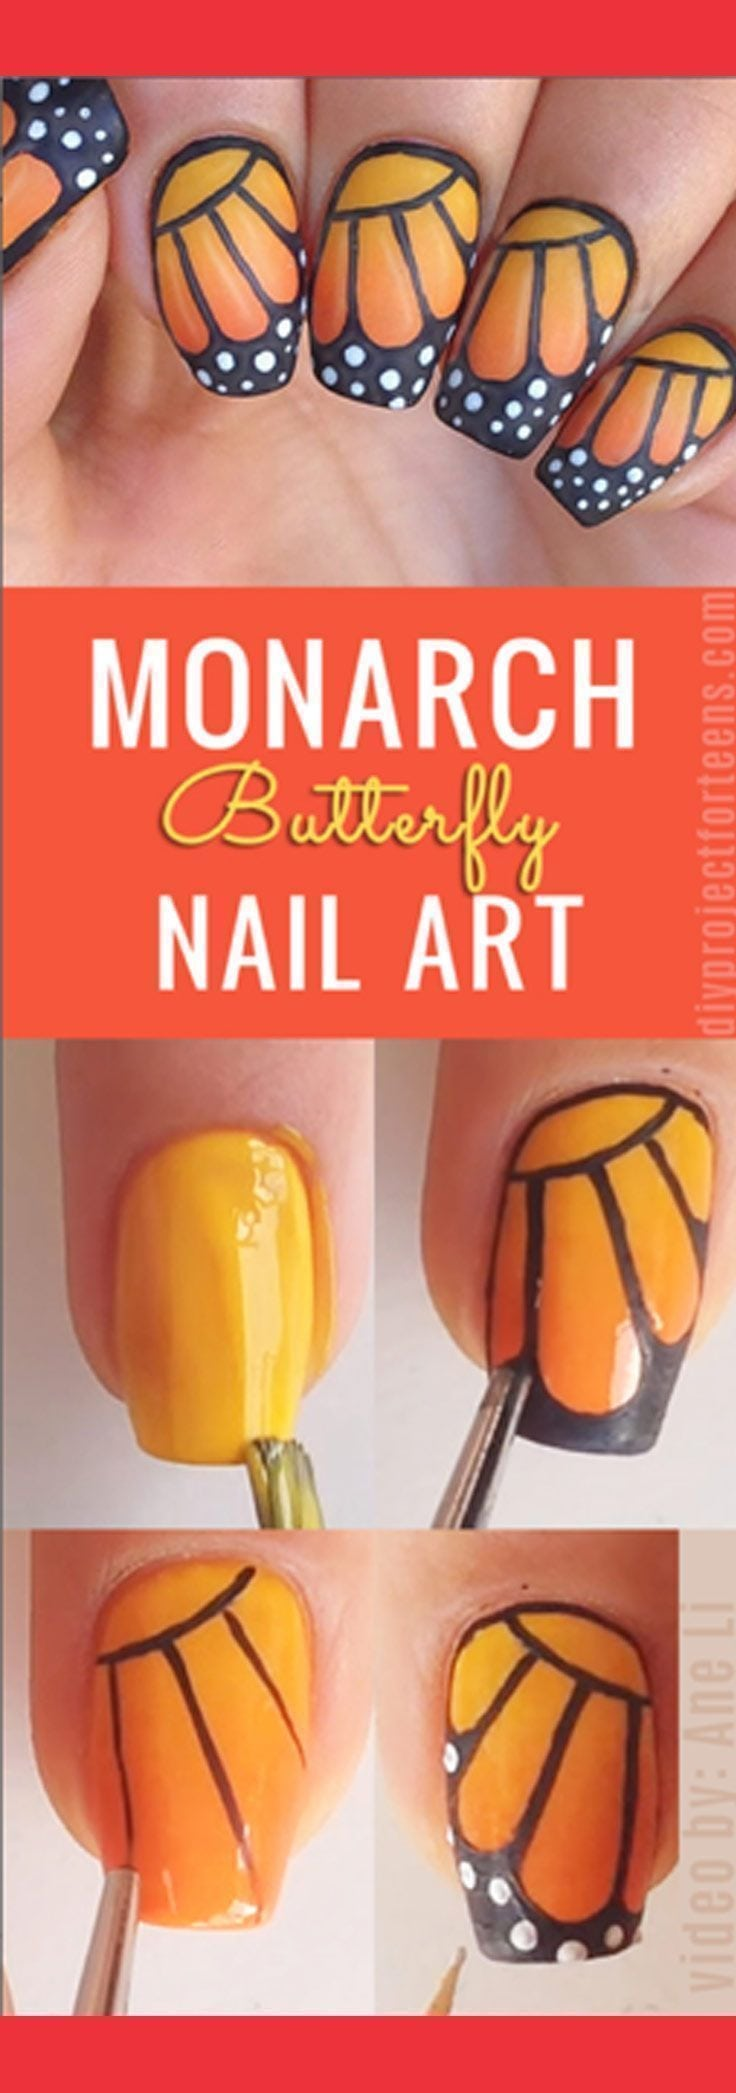 Cool Nail Art Ideas – How to do monarch butterfly nail art – tutorial DIY Manicure and Nail Design Ideas Source by Anna73HD   …